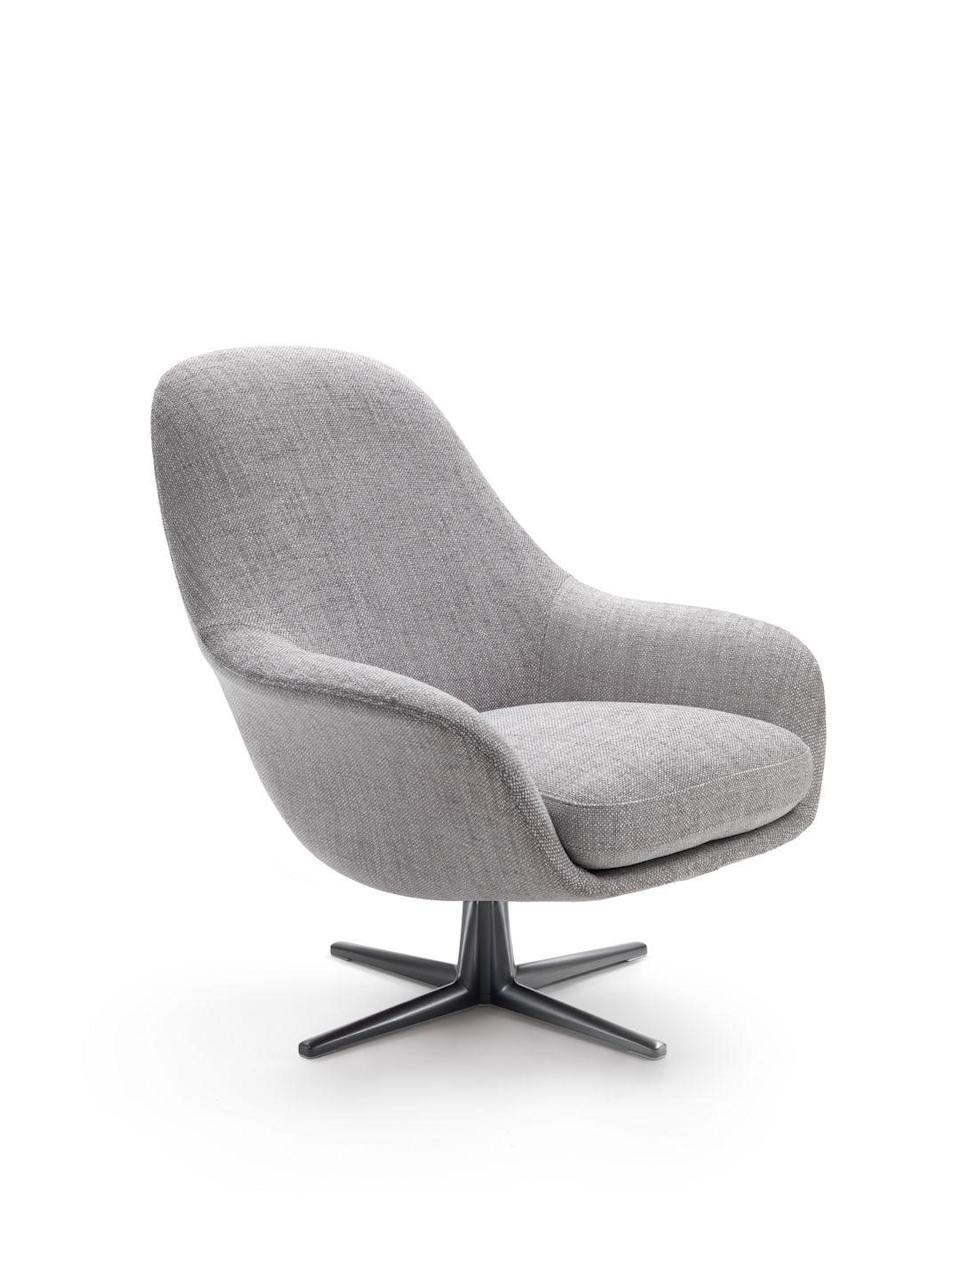 """<p>A truly welcoming armchair is practical as well as comfortable and beautiful. A fact that hasn't escaped Italian designer Carlo Colombo, who created the 'Sveva Soft' armchair for Flexform. Made to cocoon yet support the body, it has a structured shell, goose-down cushion and robust cast- aluminium swivel base. From £4,012, <a href=""""https://www.interdesignuk.biz/"""" rel=""""nofollow noopener"""" target=""""_blank"""" data-ylk=""""slk:interdesignuk.biz"""" class=""""link rapid-noclick-resp"""">interdesignuk.biz</a></p>"""